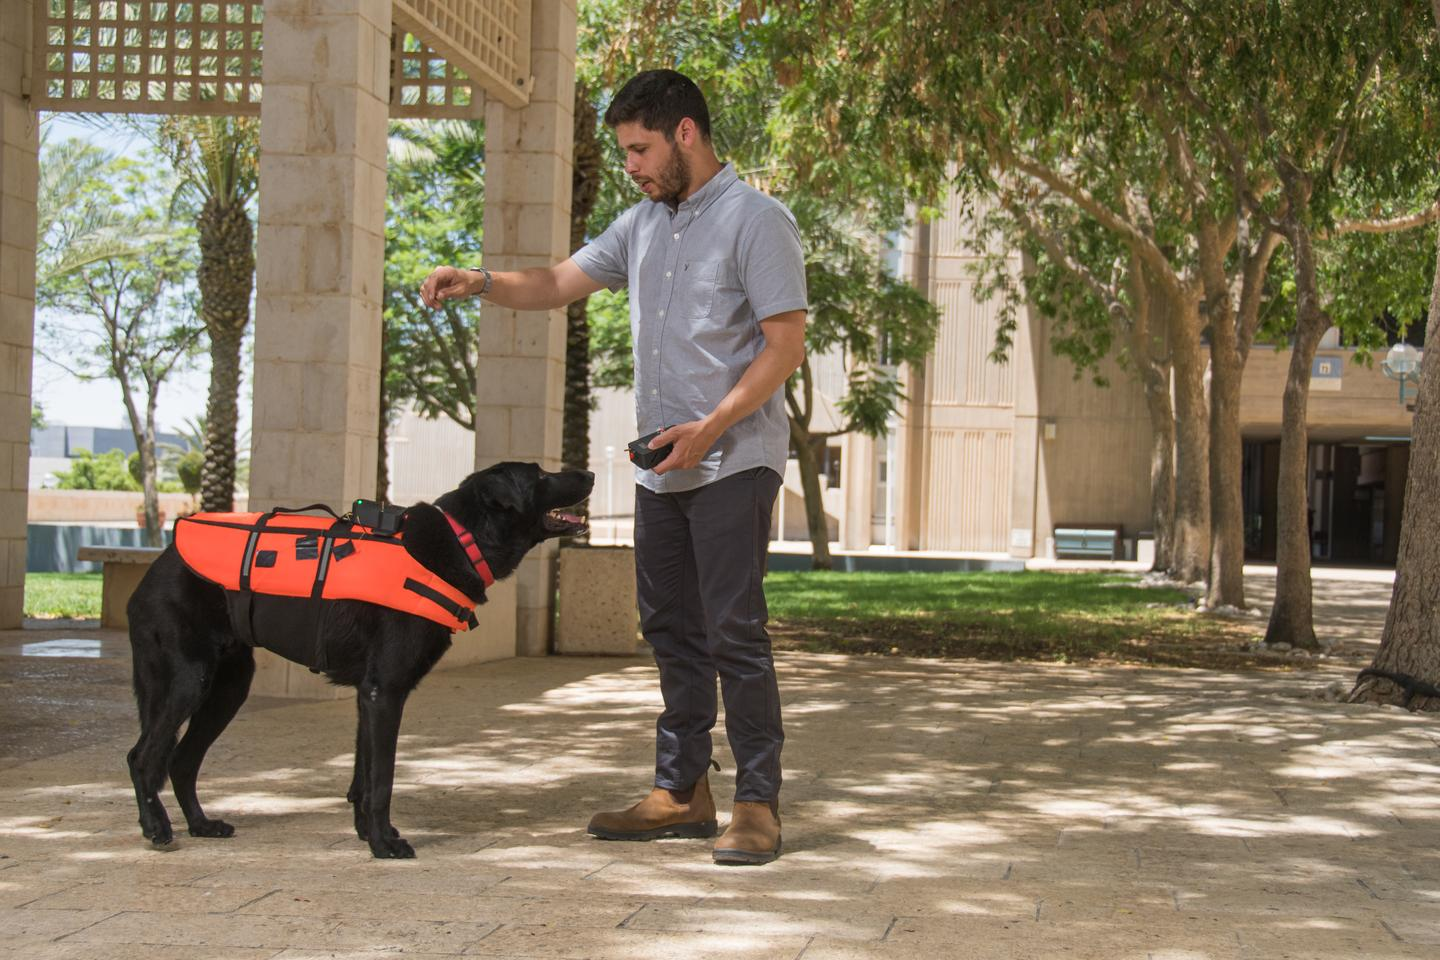 The vest could be used in noisy or otherwise chaotic environments, where trained dogs can't see or hear their handlers